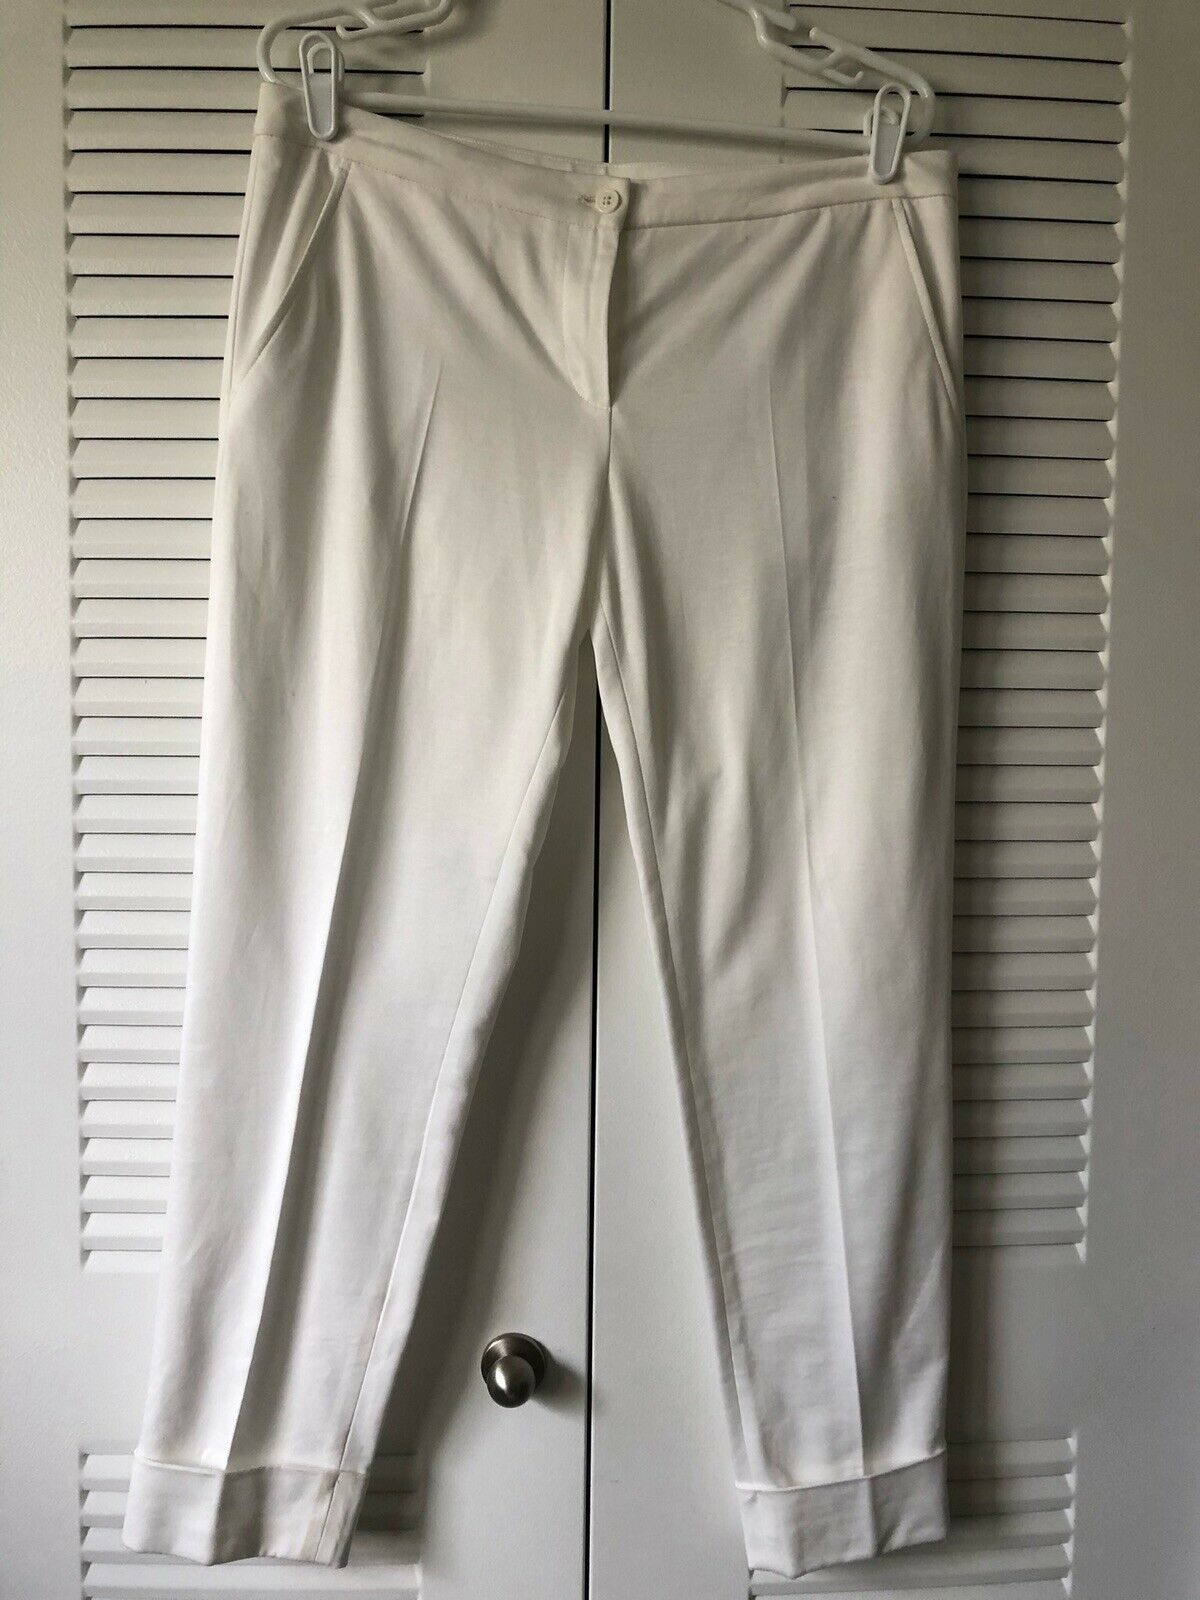 Moncler 100% Authentic White Cuffed Pants NWT